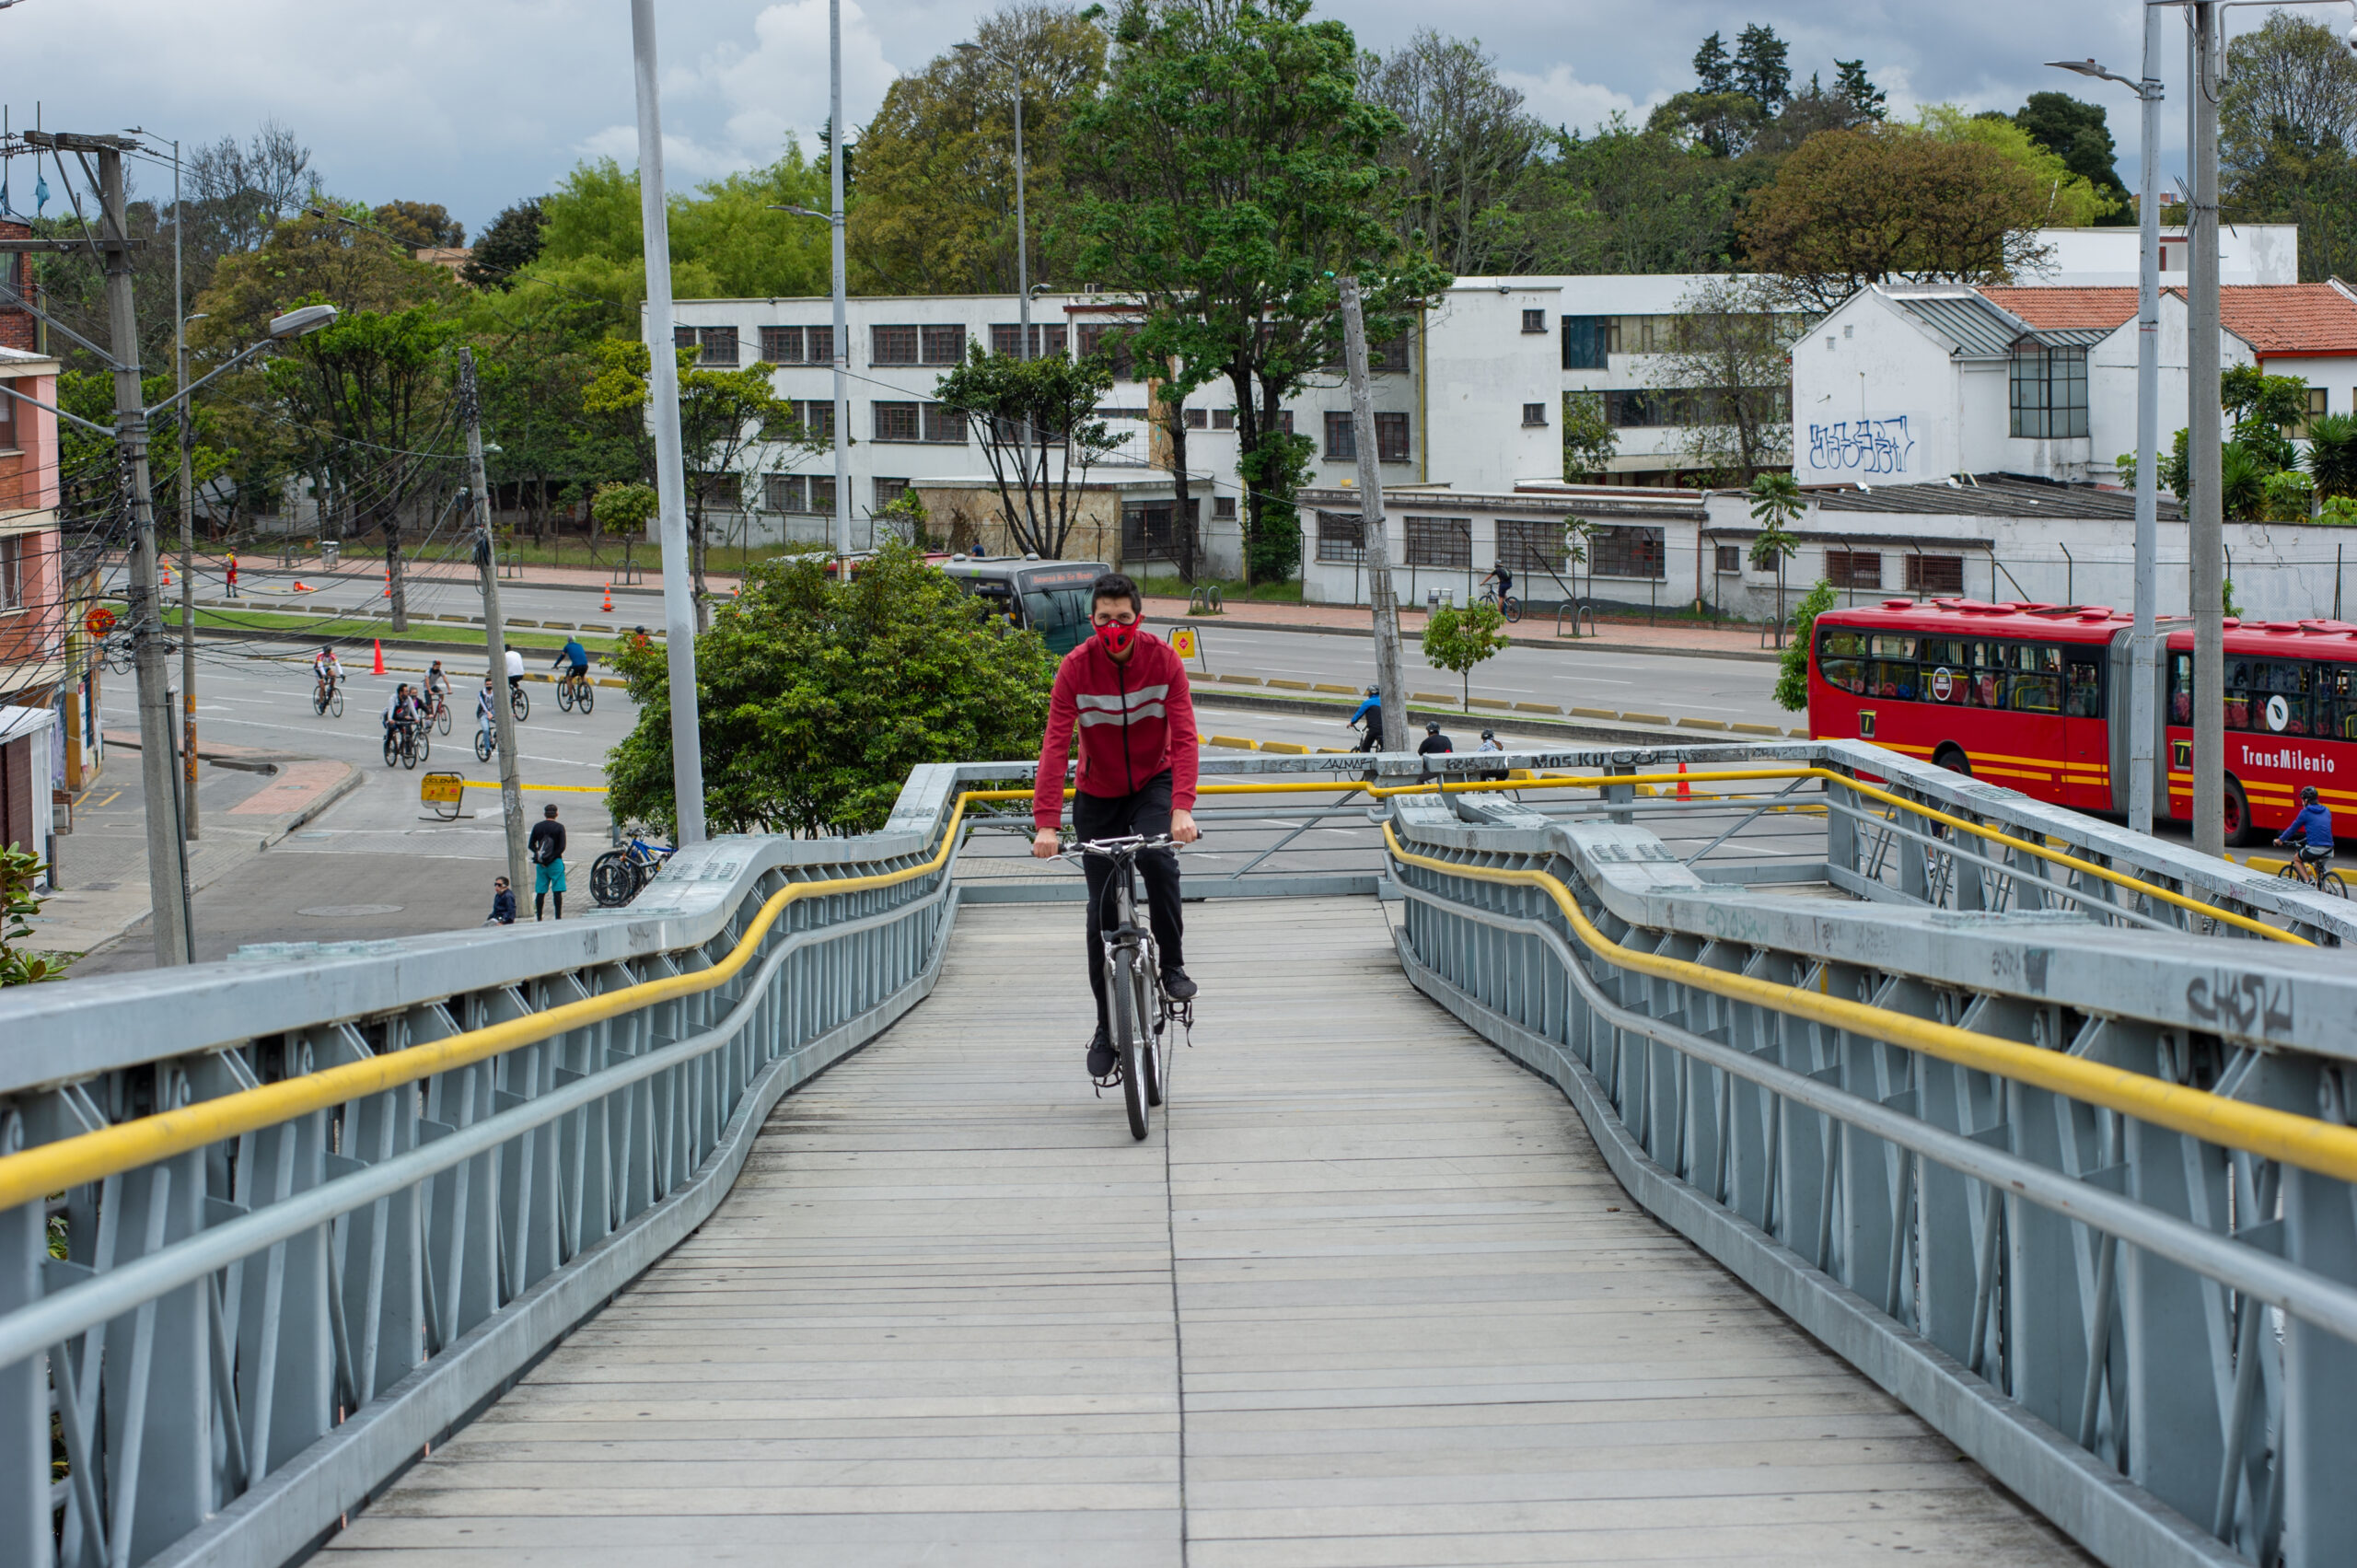 Cyclist climbing a wide bridge designed for cyclists and pedestrians with two levels of handrails and a clear street in the background with a few cyclists and one bus.